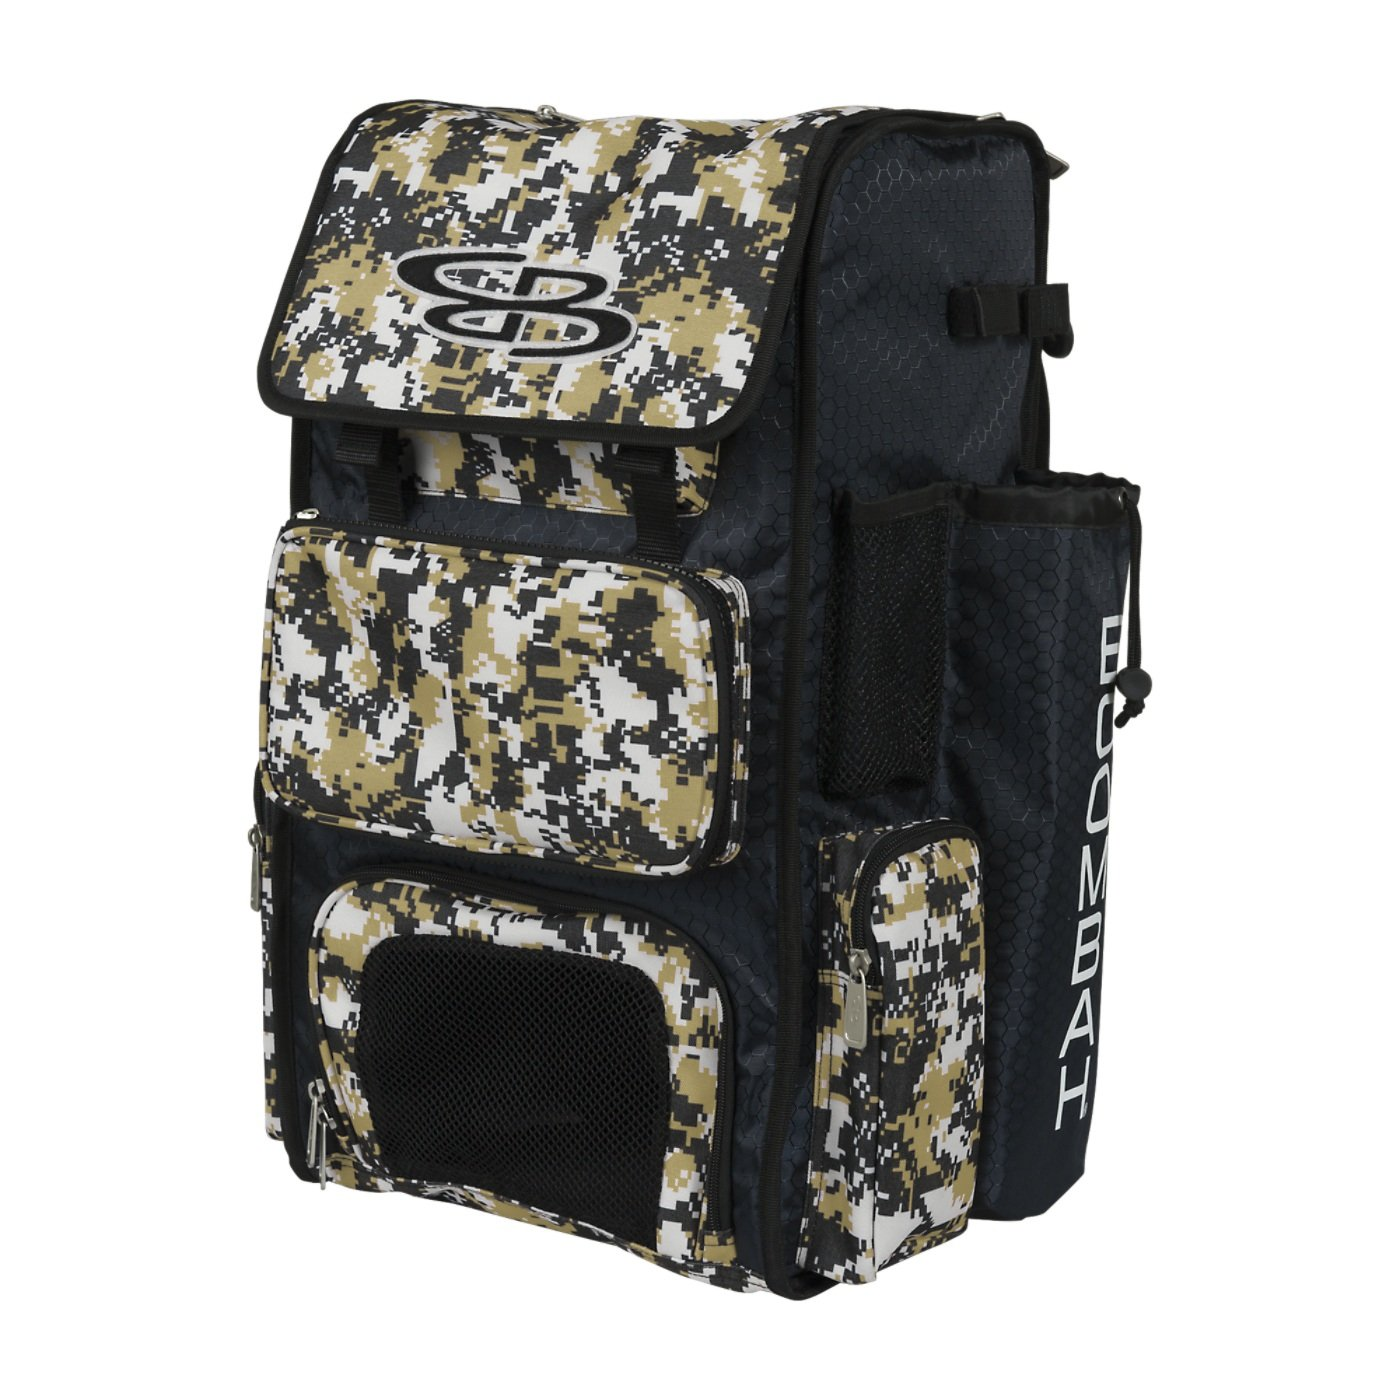 Boombah Superpack Bat Pack -Backpack Version no Wheels Camo Series - Holds 2 Bats 20 Color Options for Baseball or Softball